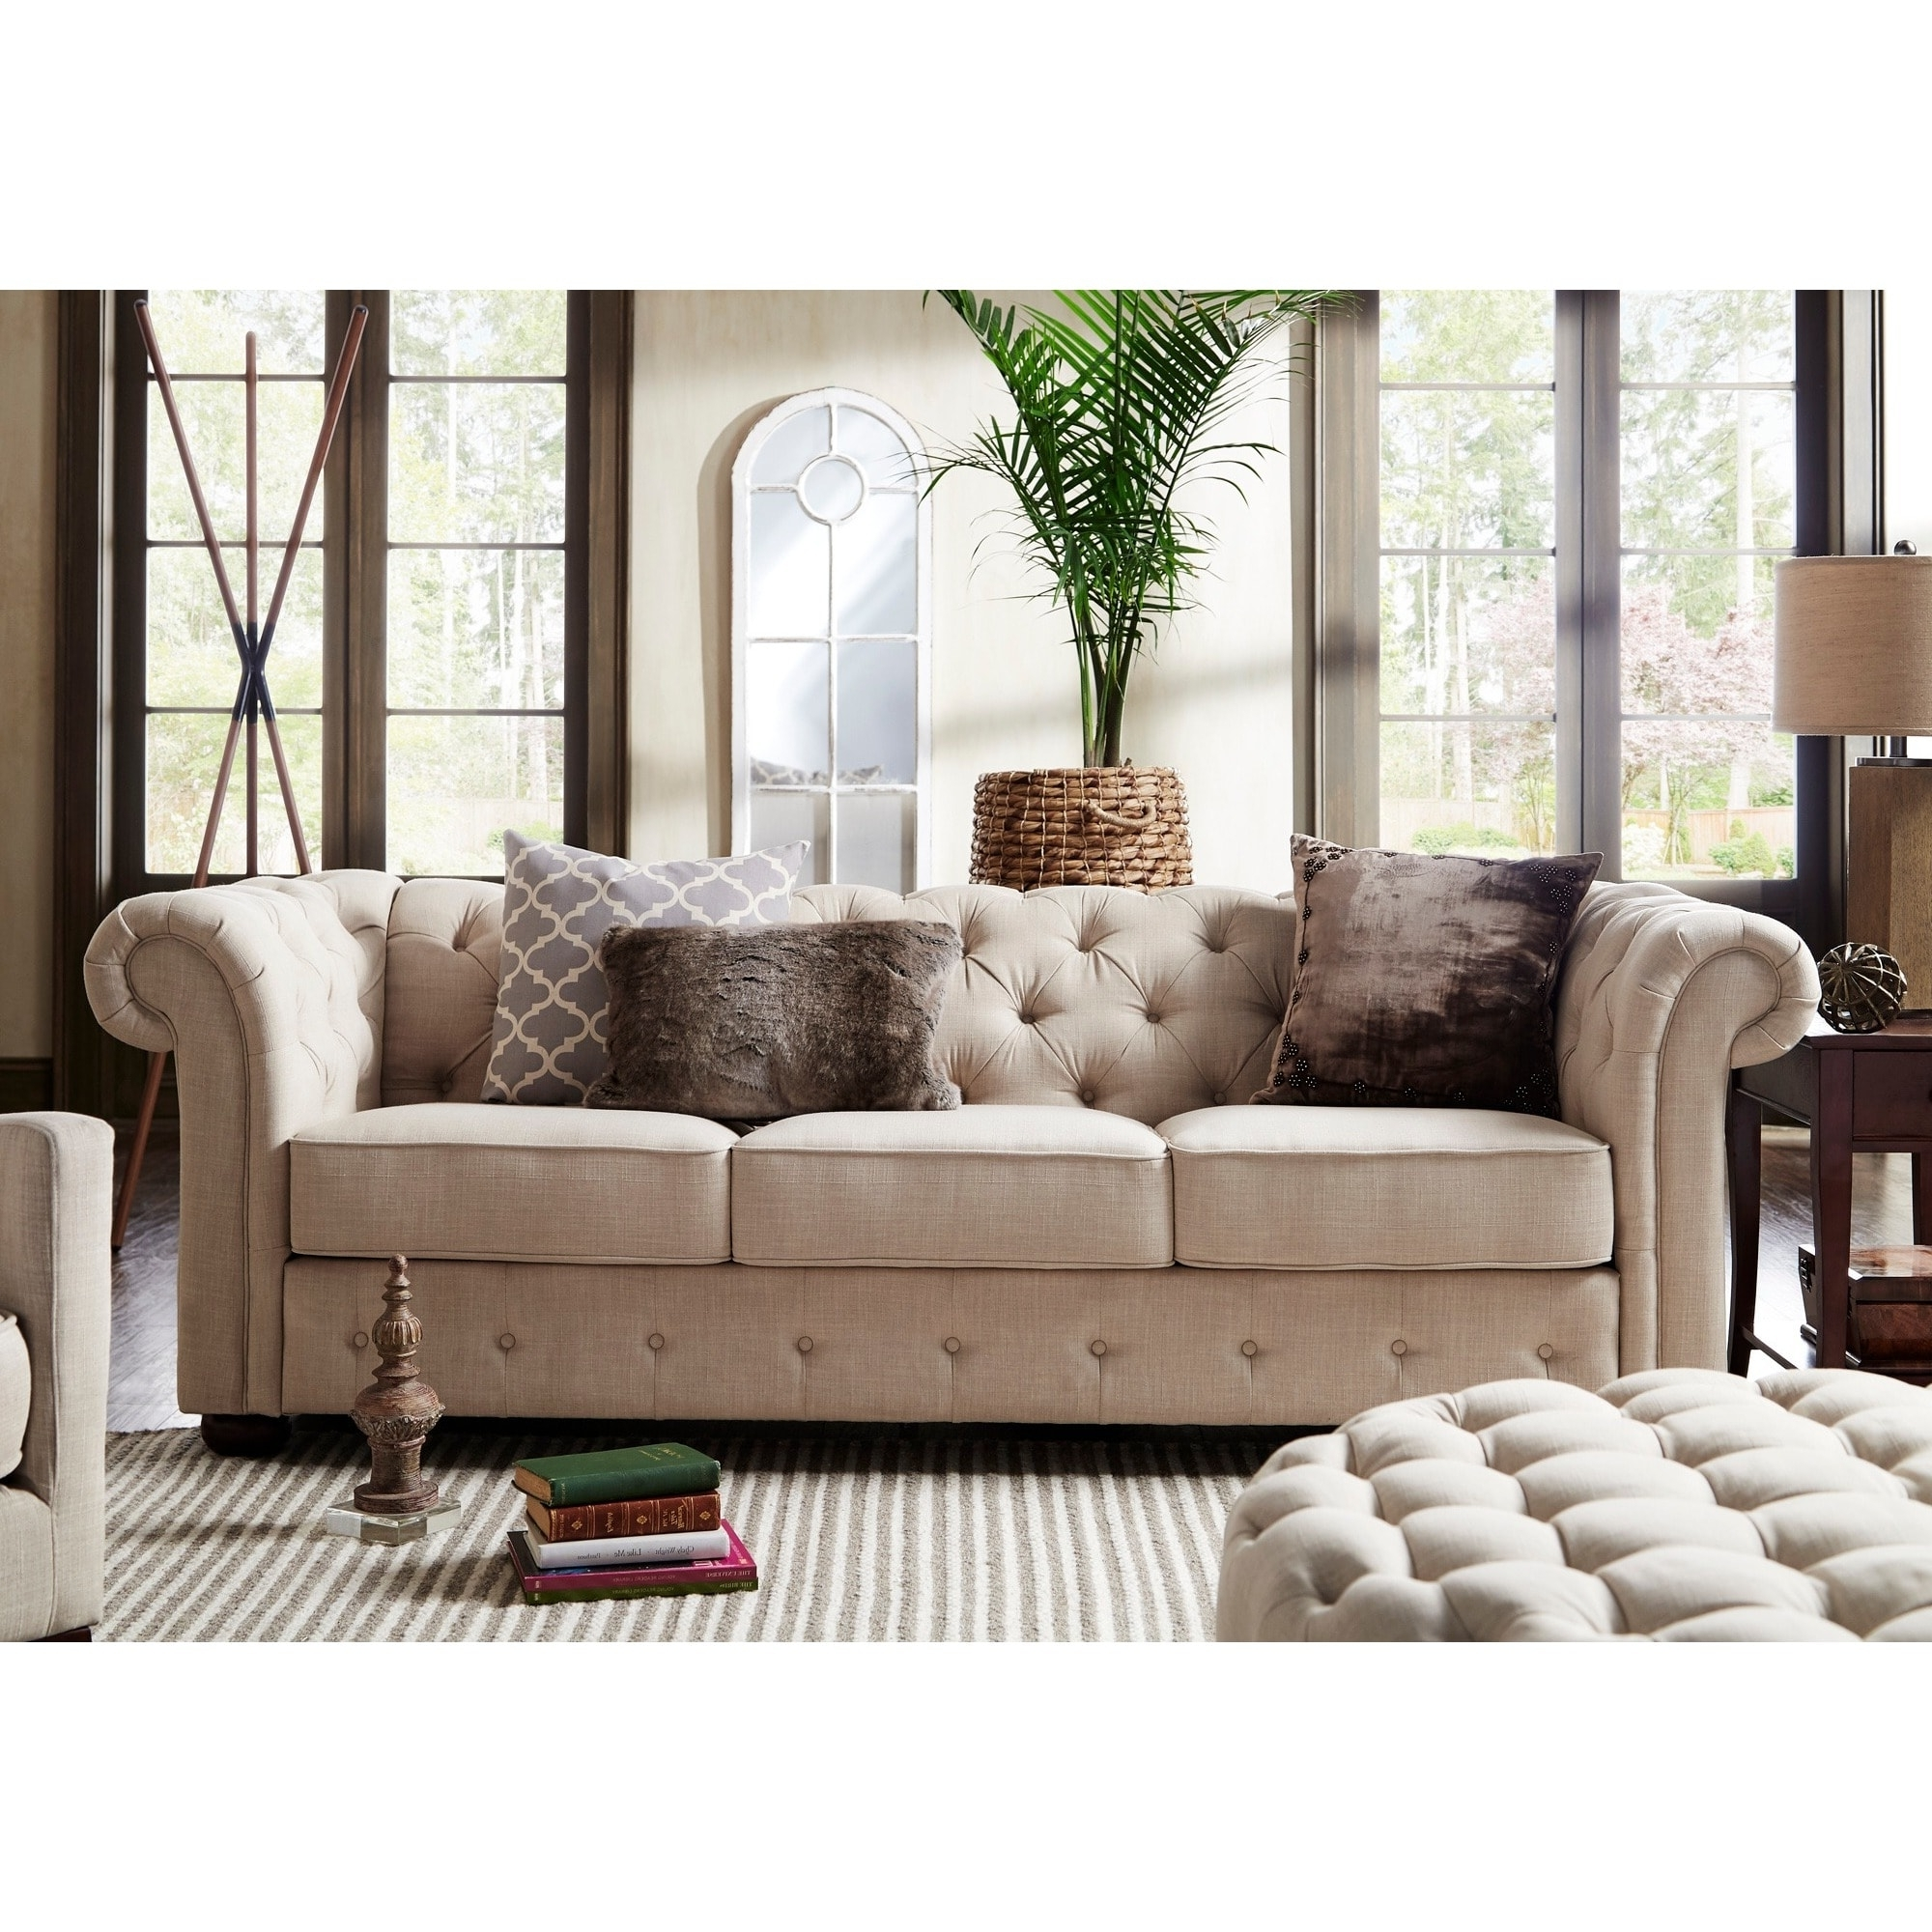 Famous Knightsbridge Beige Fabric Button Tufted Chesterfield Sofa And In Chesterfield Sofas And Chairs (View 6 of 15)